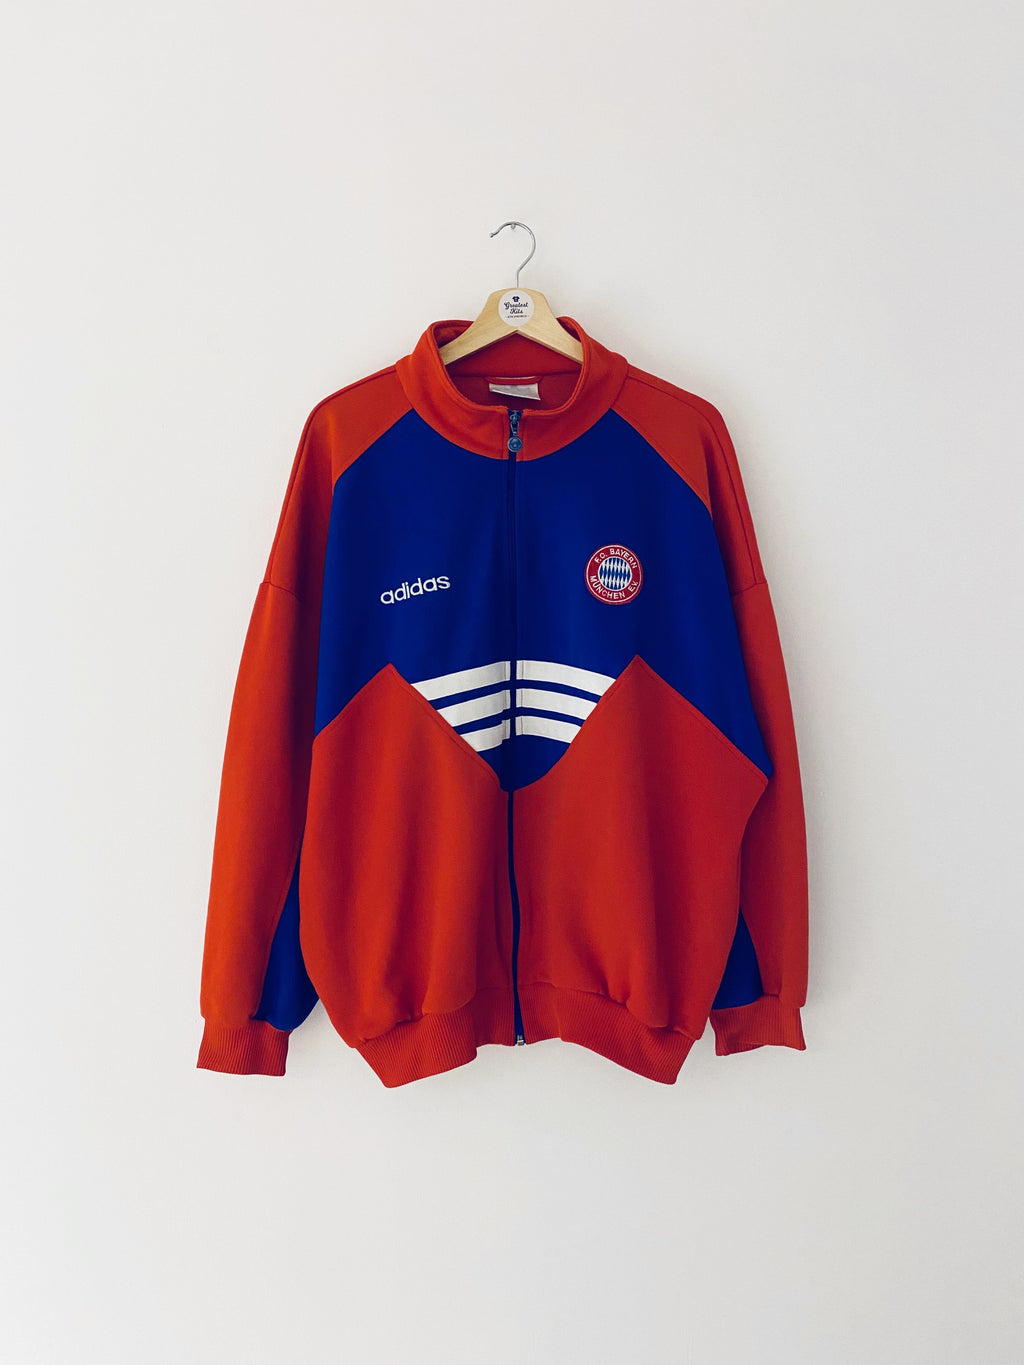 1993/95 Bayern Munich Track Top (L) 9/10